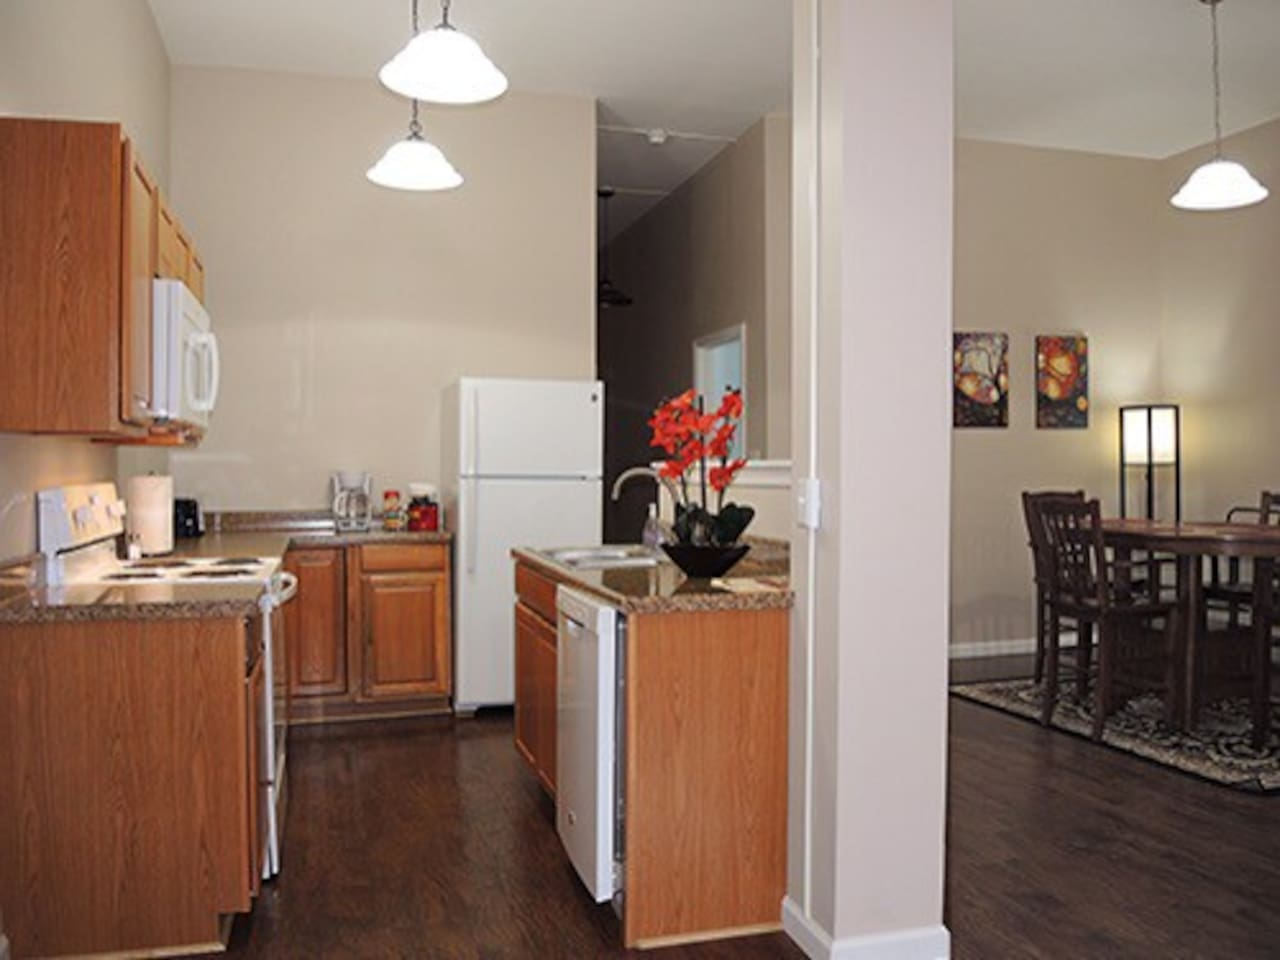 A First Class Apartment! Renovated in 2015 immaculate presentation featuring contemporary decor and spacious rooms. Two apartments less than 1 mile to All Star Village and less than 3 miles from  the colleges & Fox Hospital.